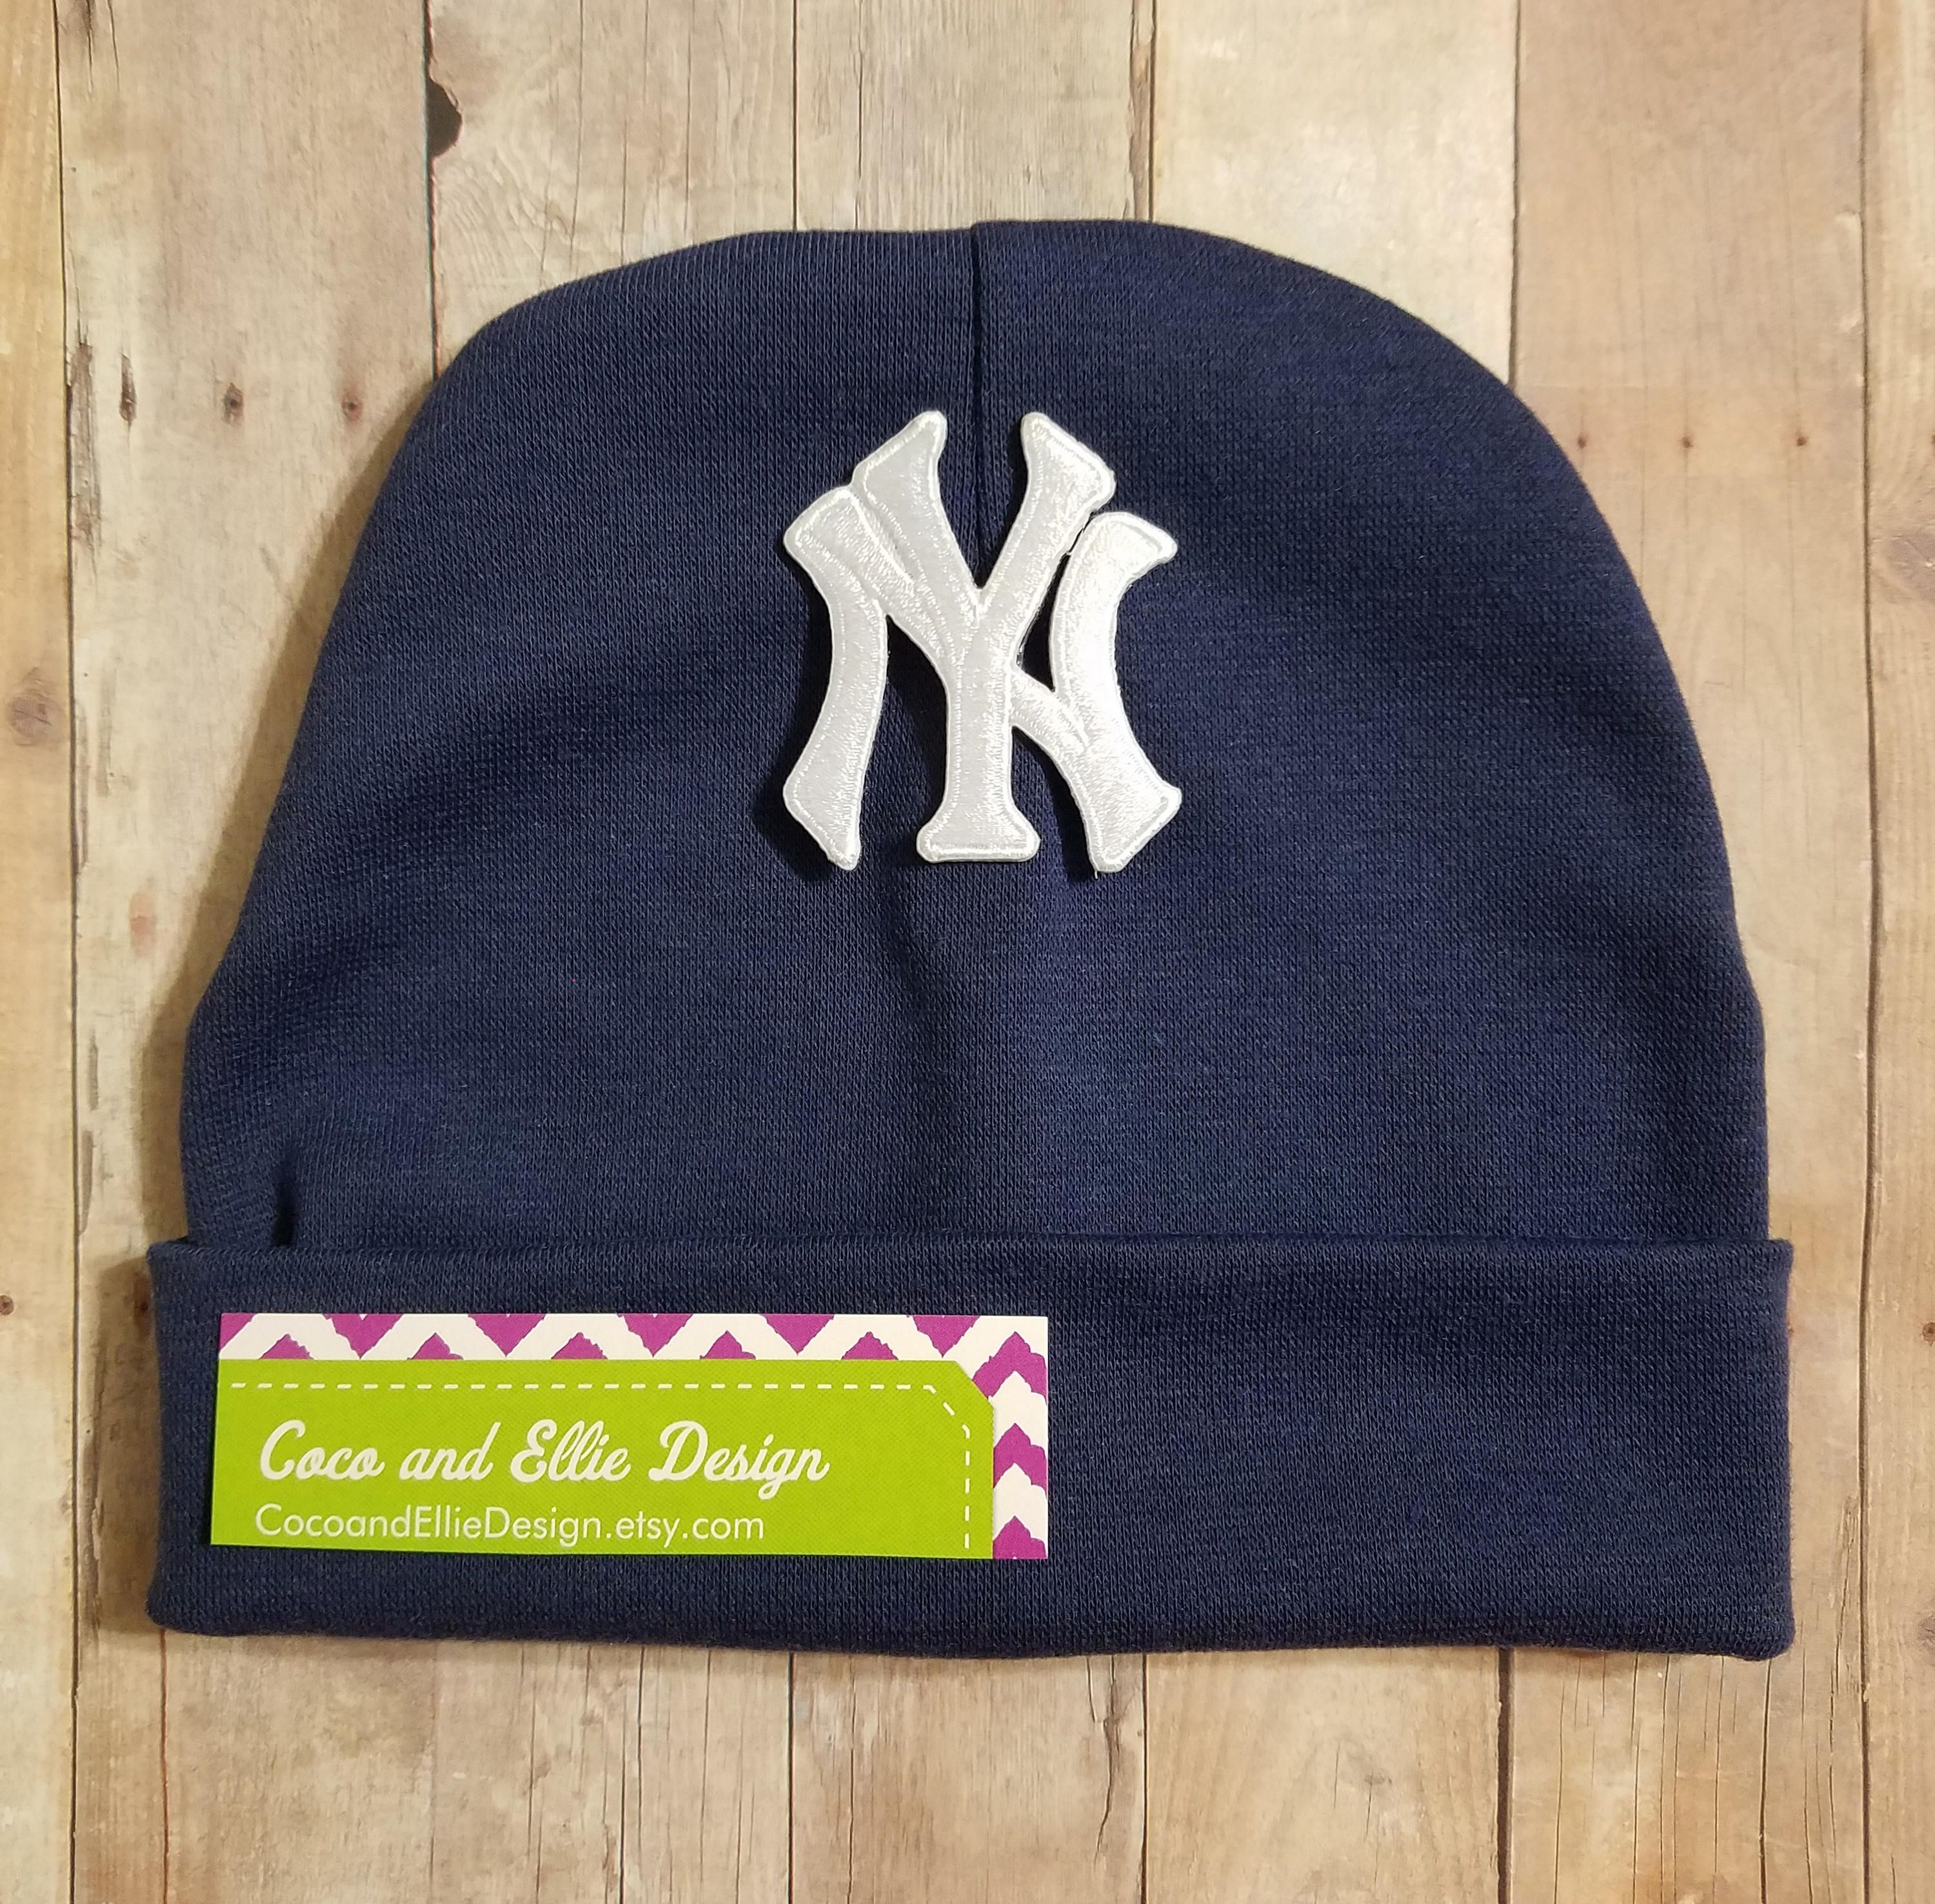 new york yankees hat-new york yankees beanie-new york yankees cap-yankees  baby hat-yankees beanie for baby-ny yankees infant hat-yankees hat by ... f44f6516277